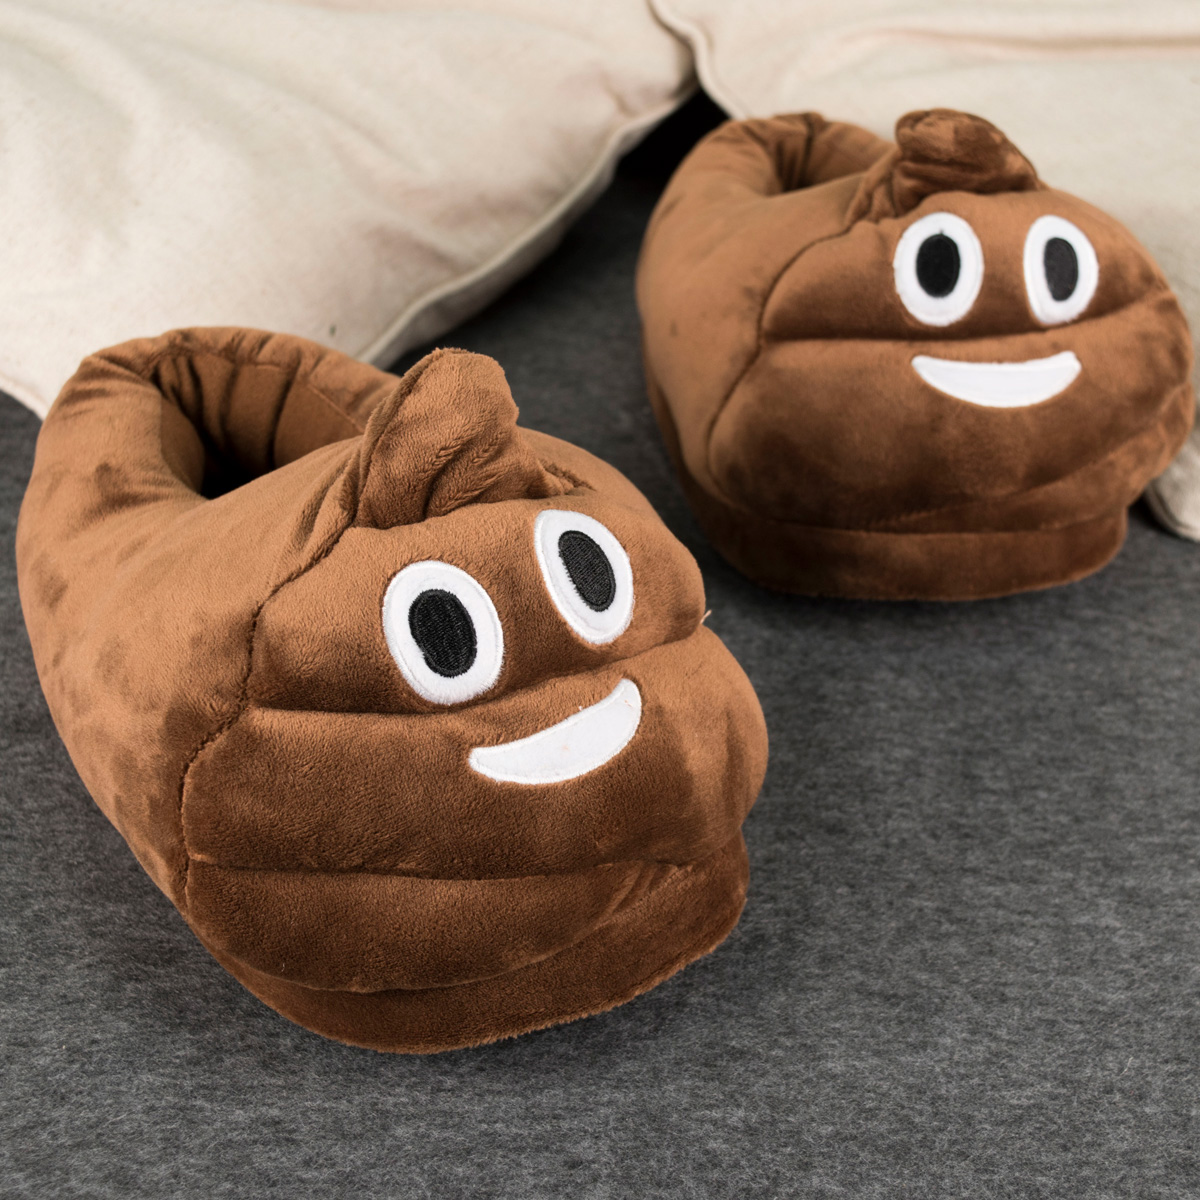 Poo Emoji Slippers